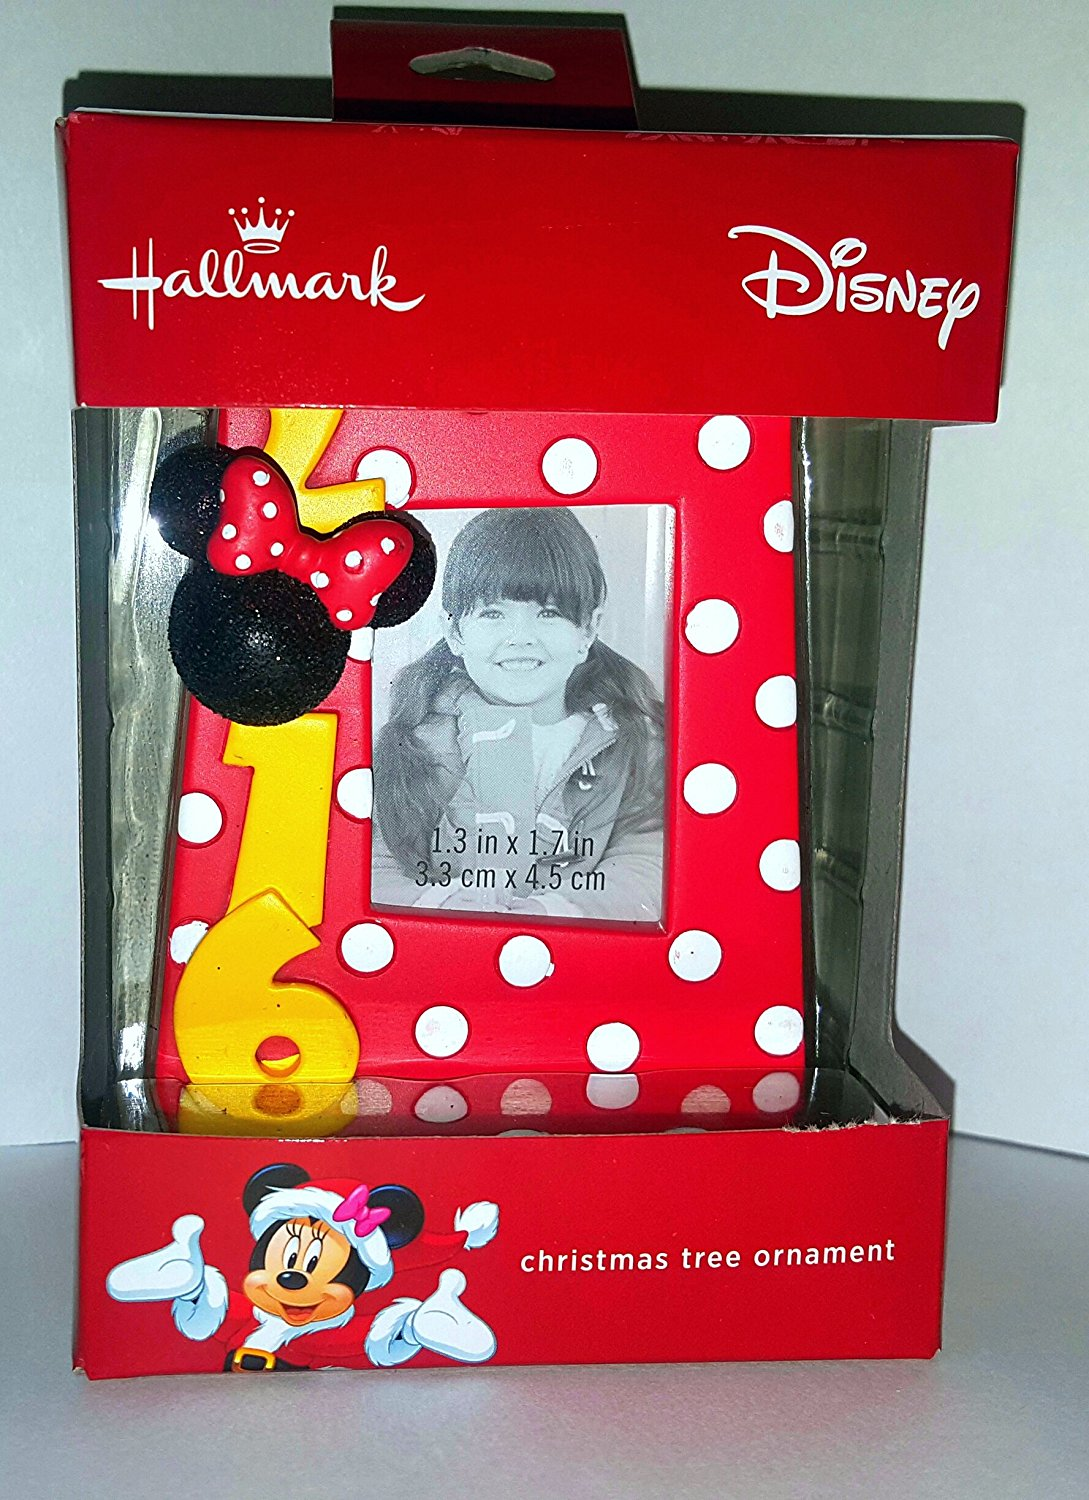 Hallmark Disney Minnie Mouse 2016 Picture Frame Christmas Tree Ornament